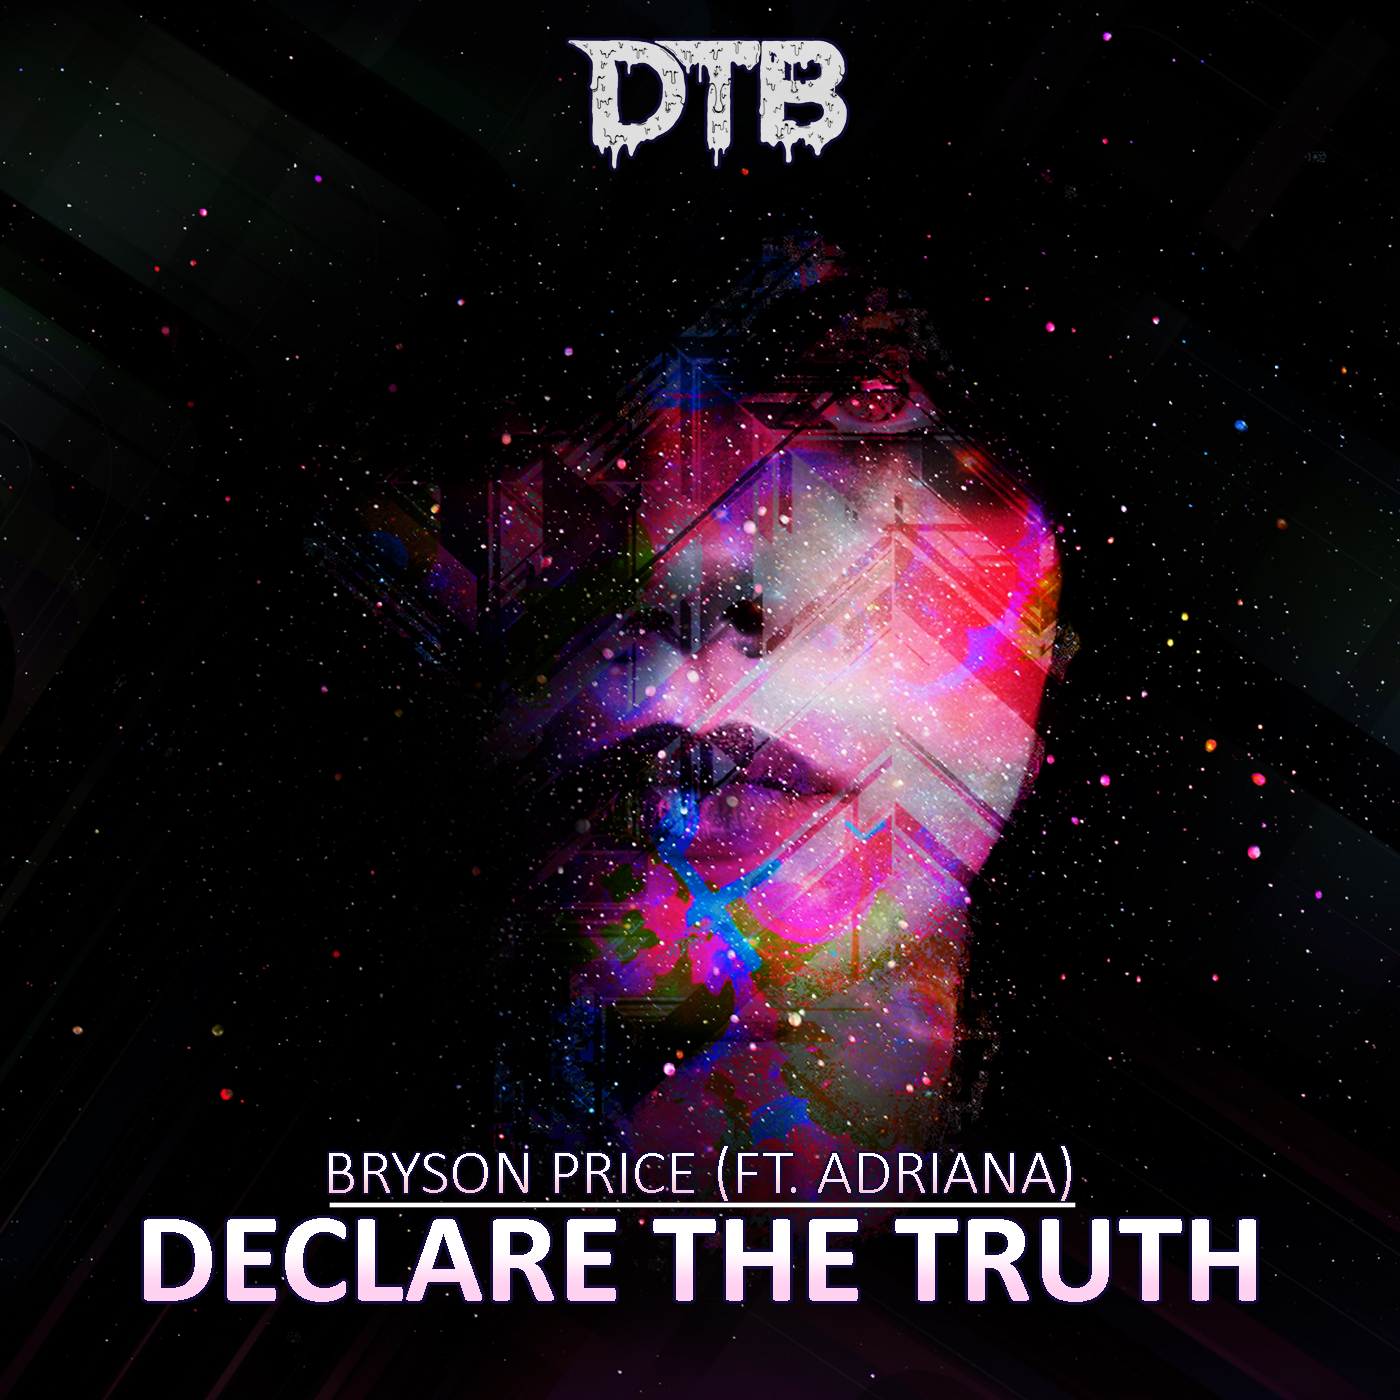 Bryson Price ft. Adriana - Declare the Truth.jpg